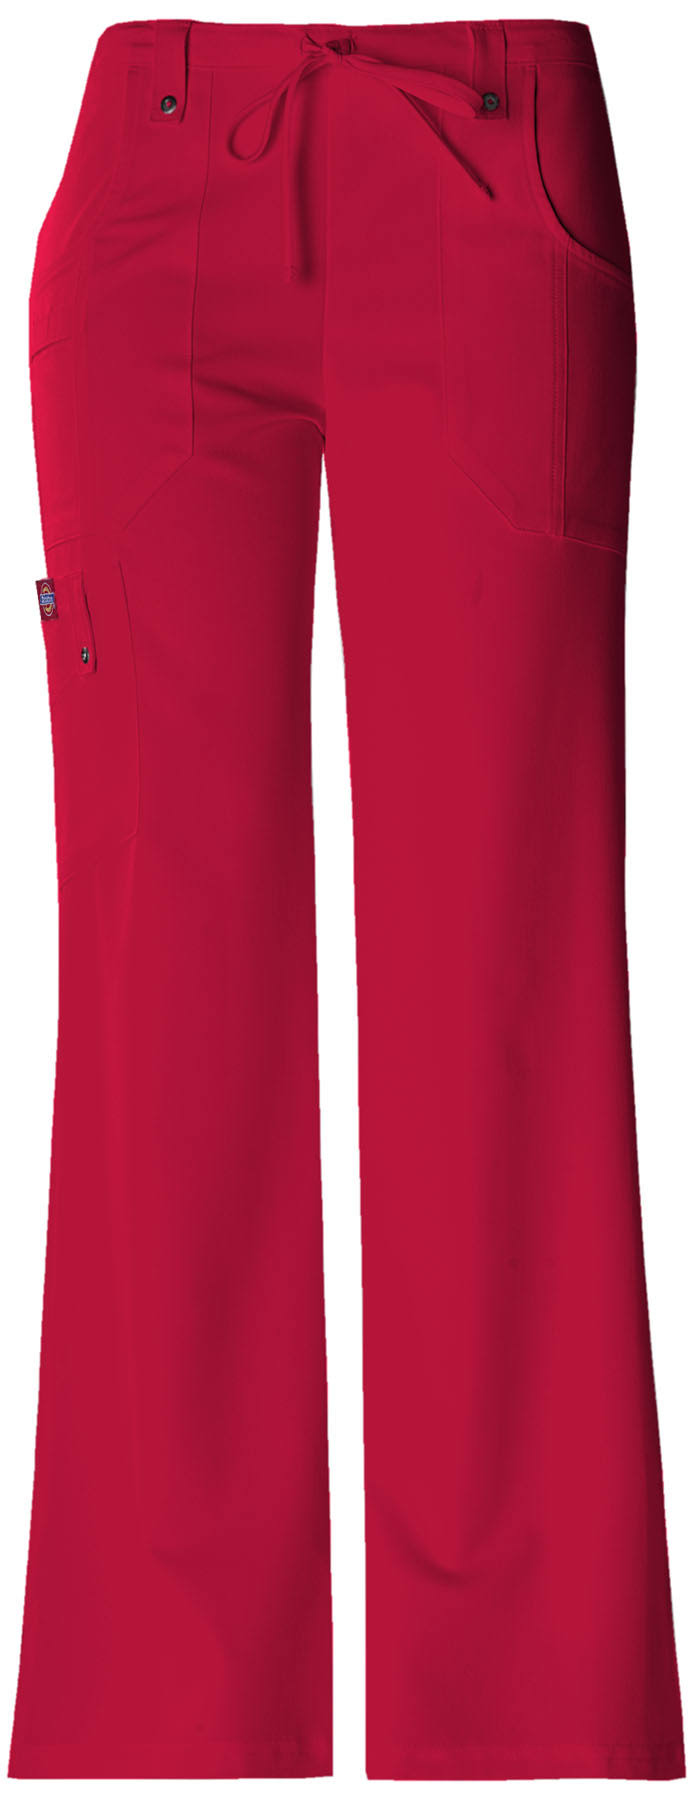 Dickies Women's Xtreme Stretch Tall Drawstring Scrub Pant - S - Red